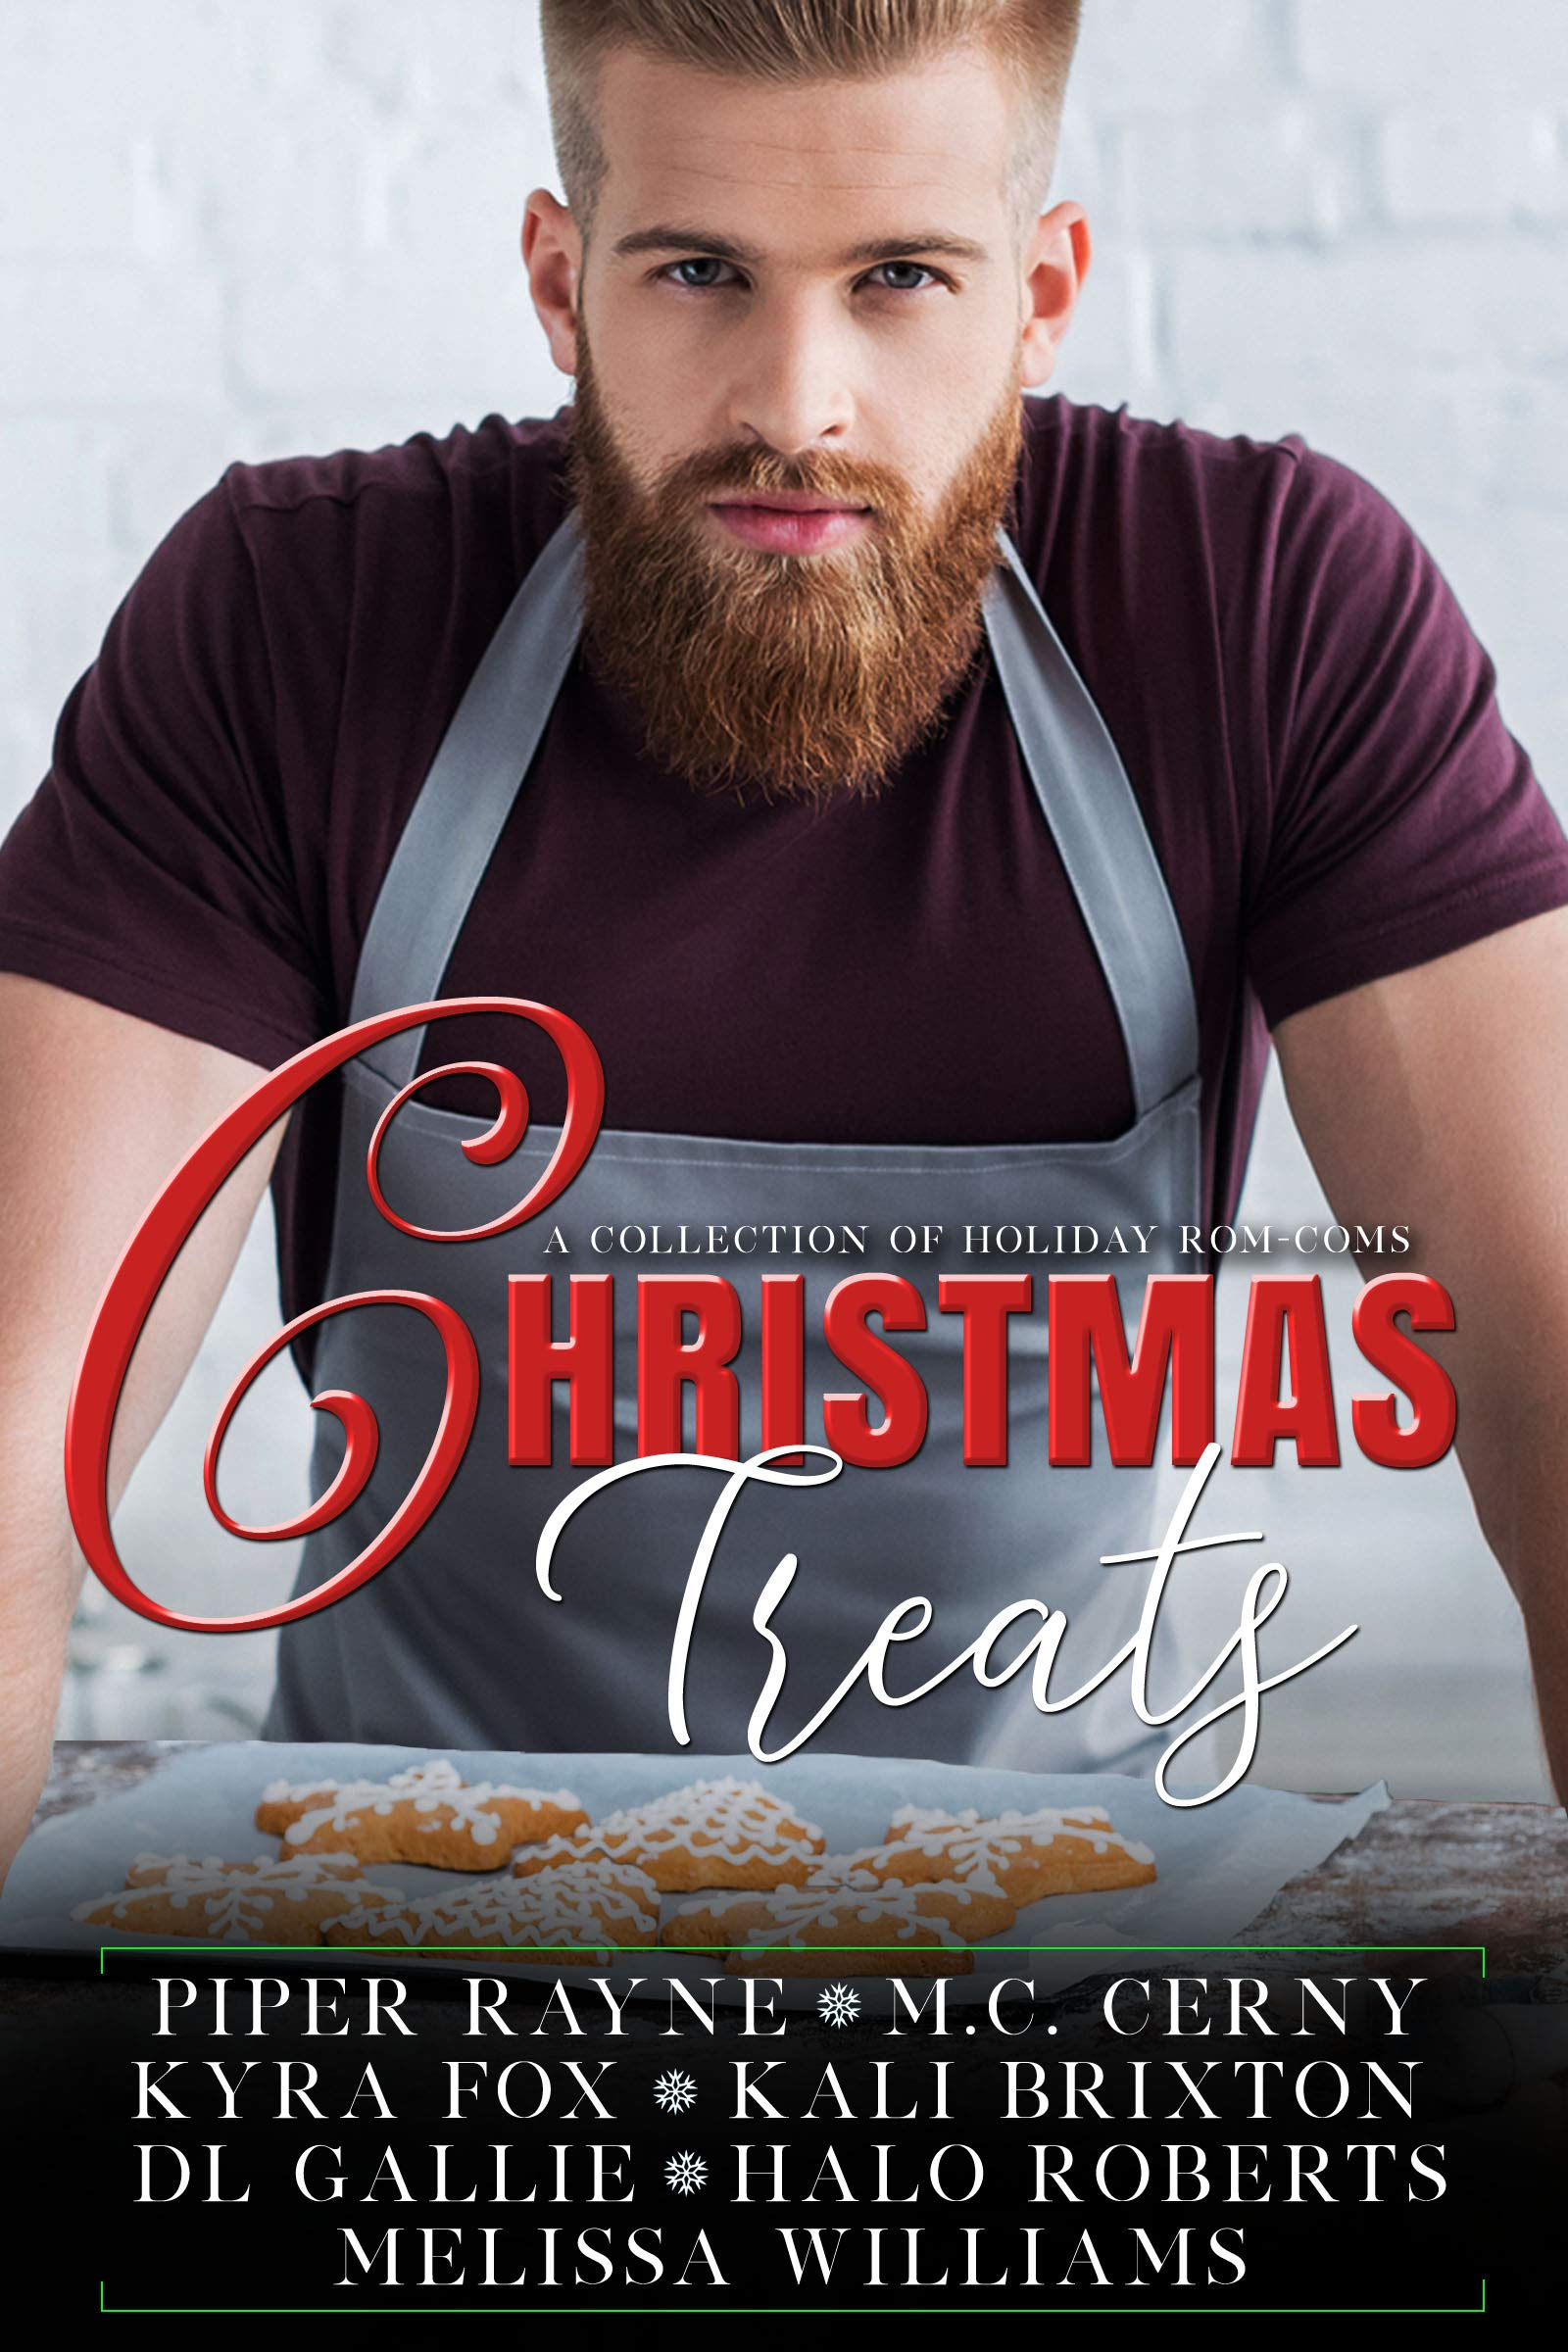 Christmas Treats - A Collection of Holiday Rom-coms